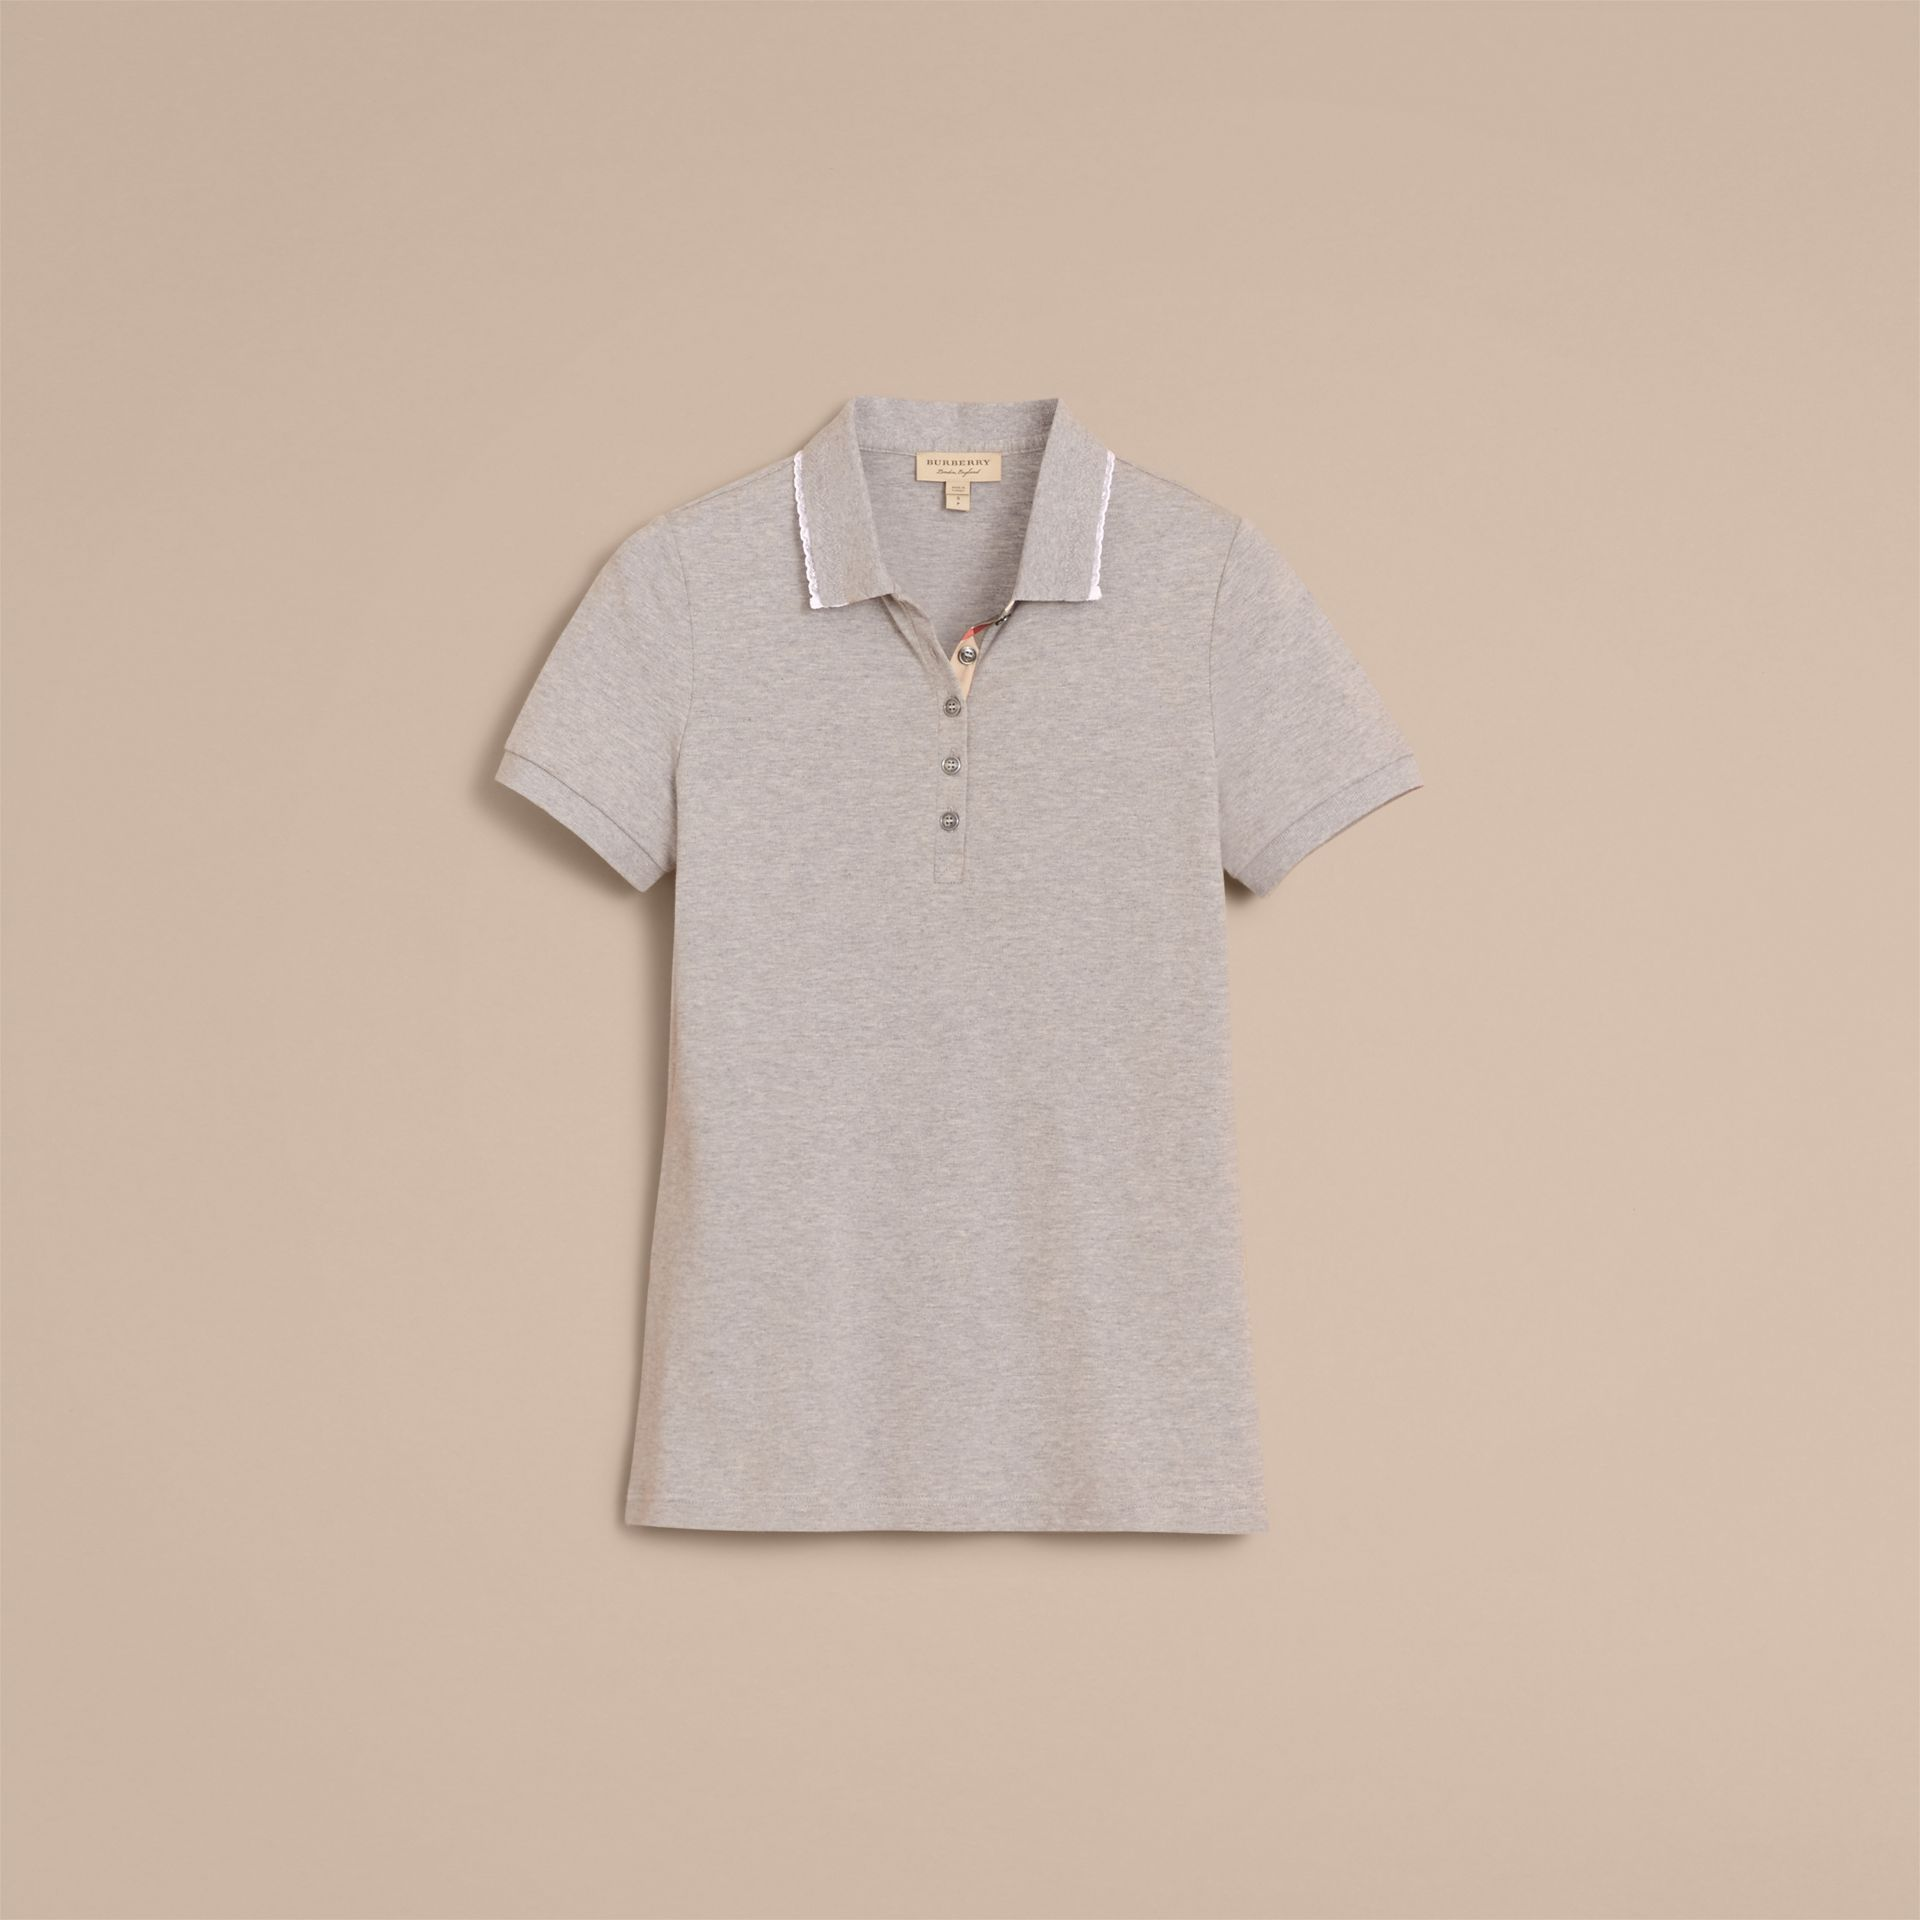 Lace Trim Cotton Blend Polo Shirt with Check Detail in Pale Grey Melange - Women | Burberry - gallery image 3